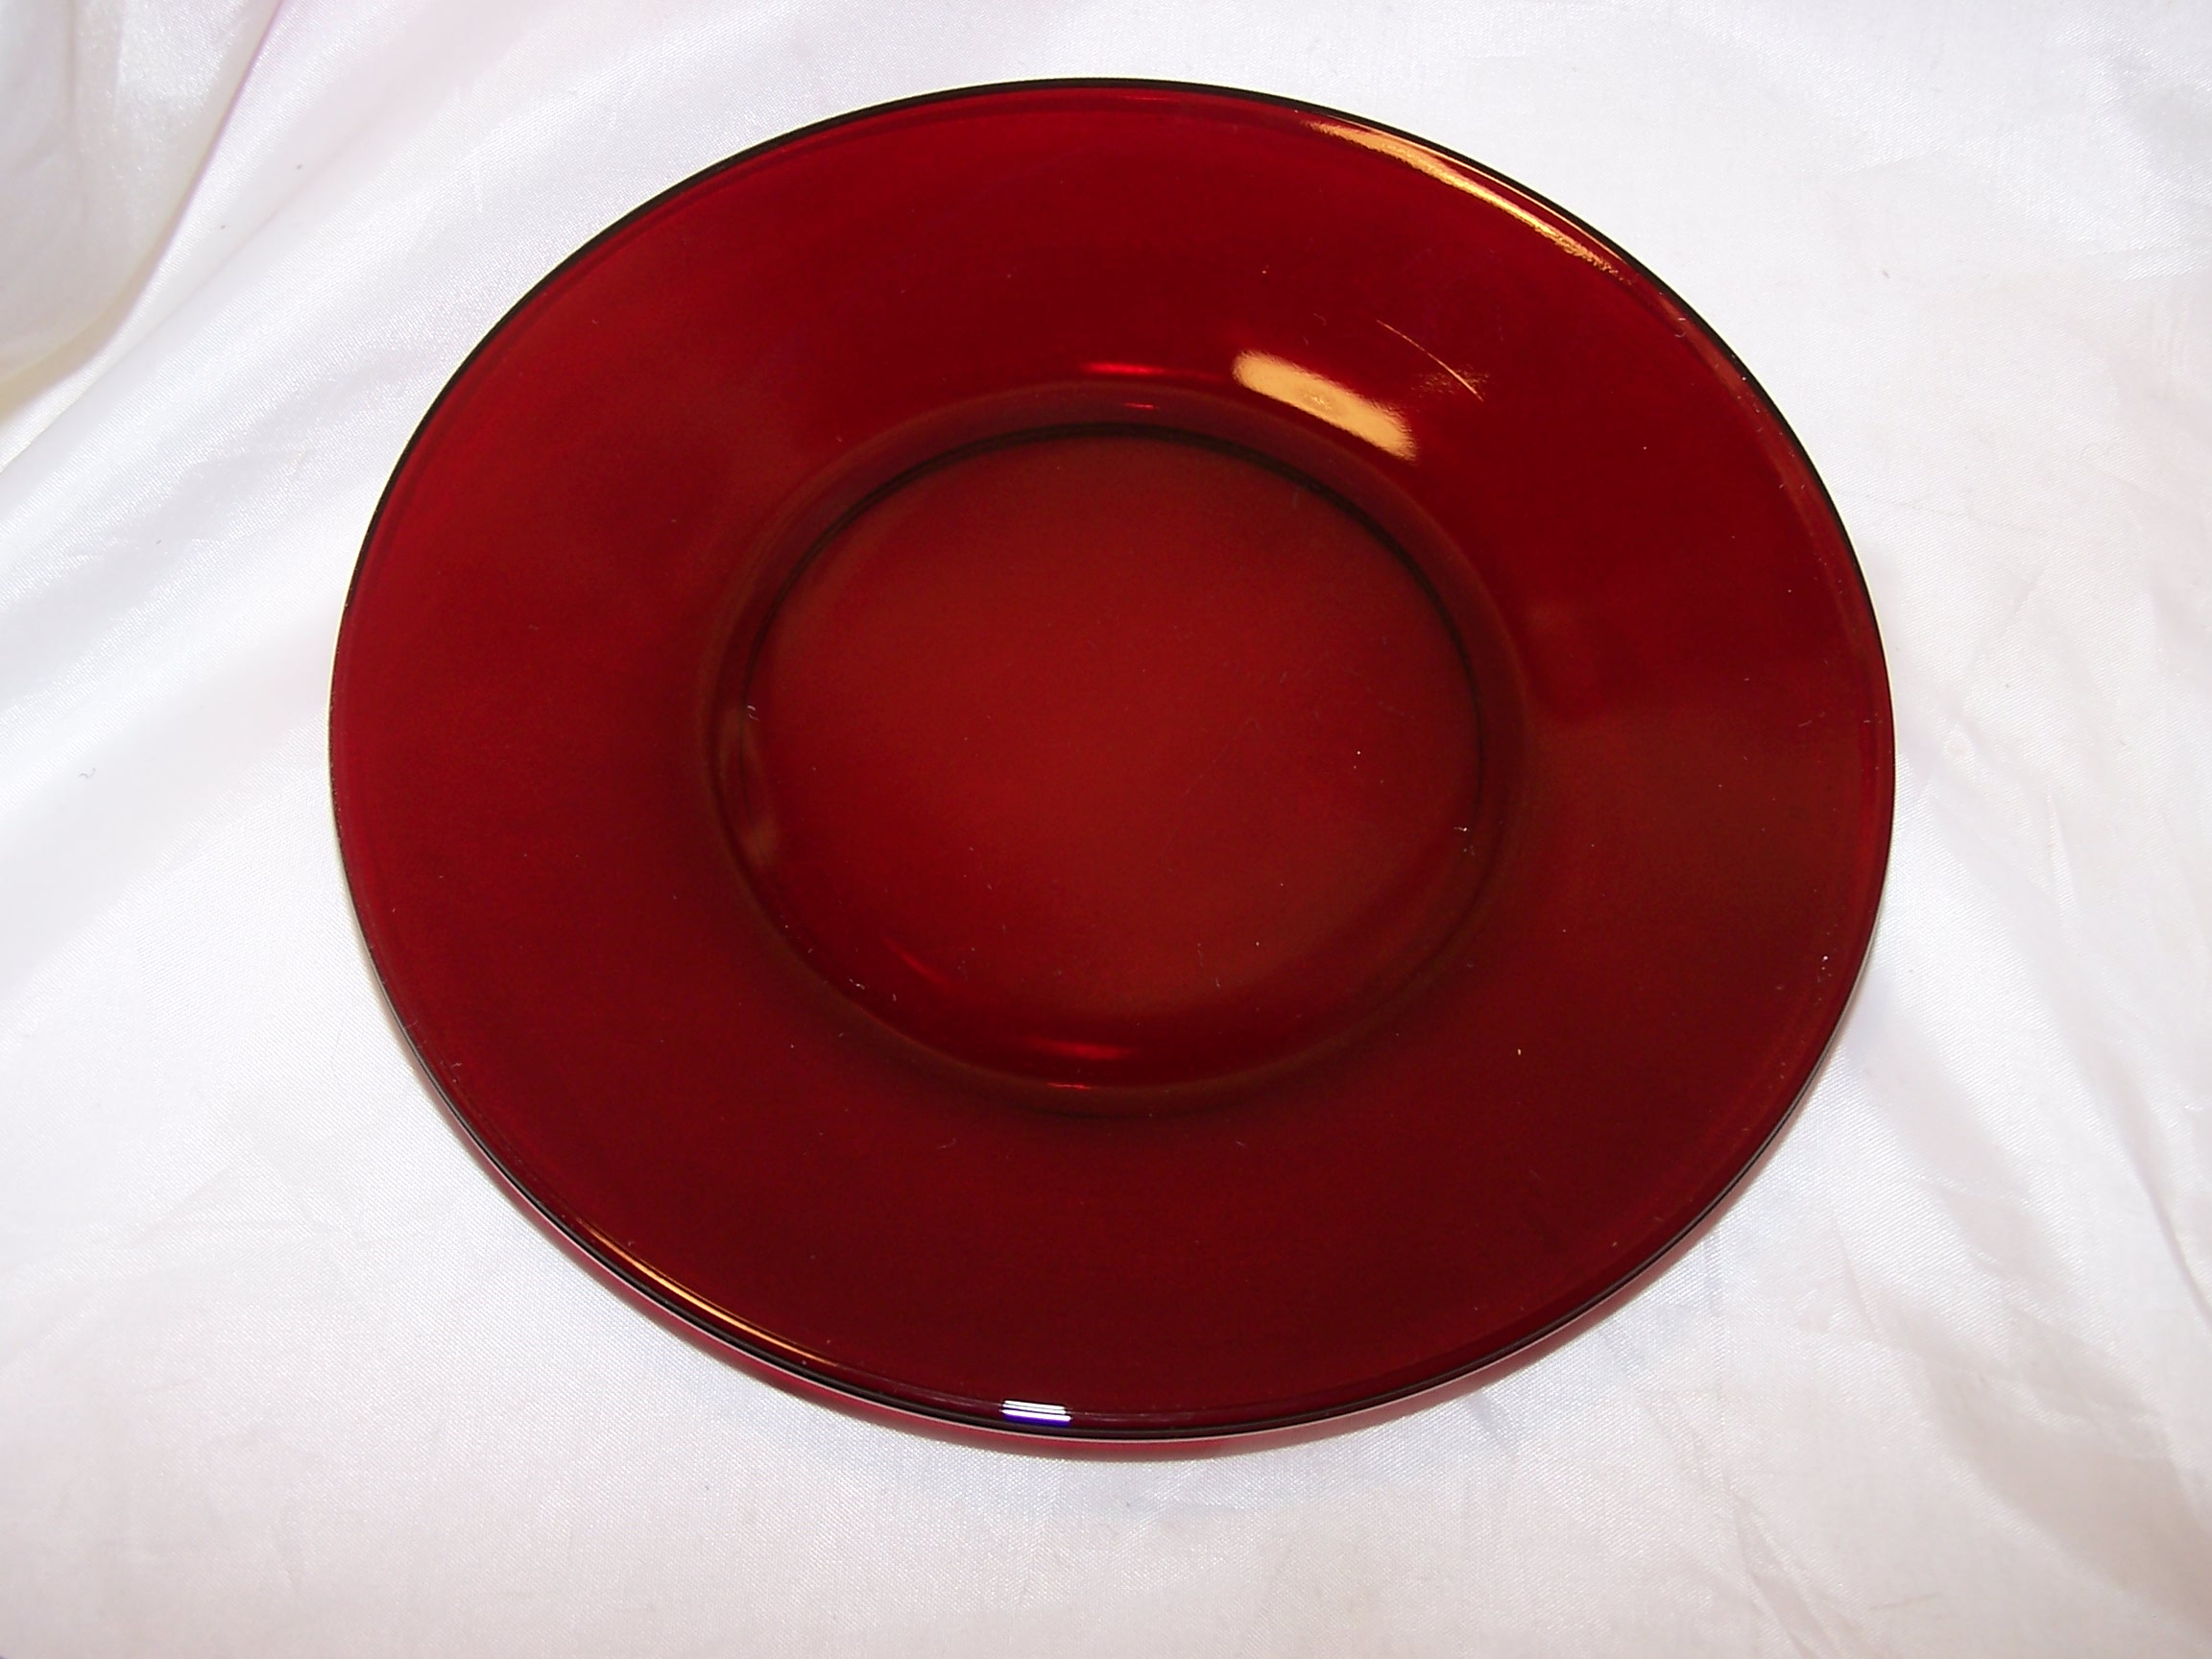 kitchen dining set unassembled cabinets wholesale ruby red depression glass plates, cups, sugar bowl